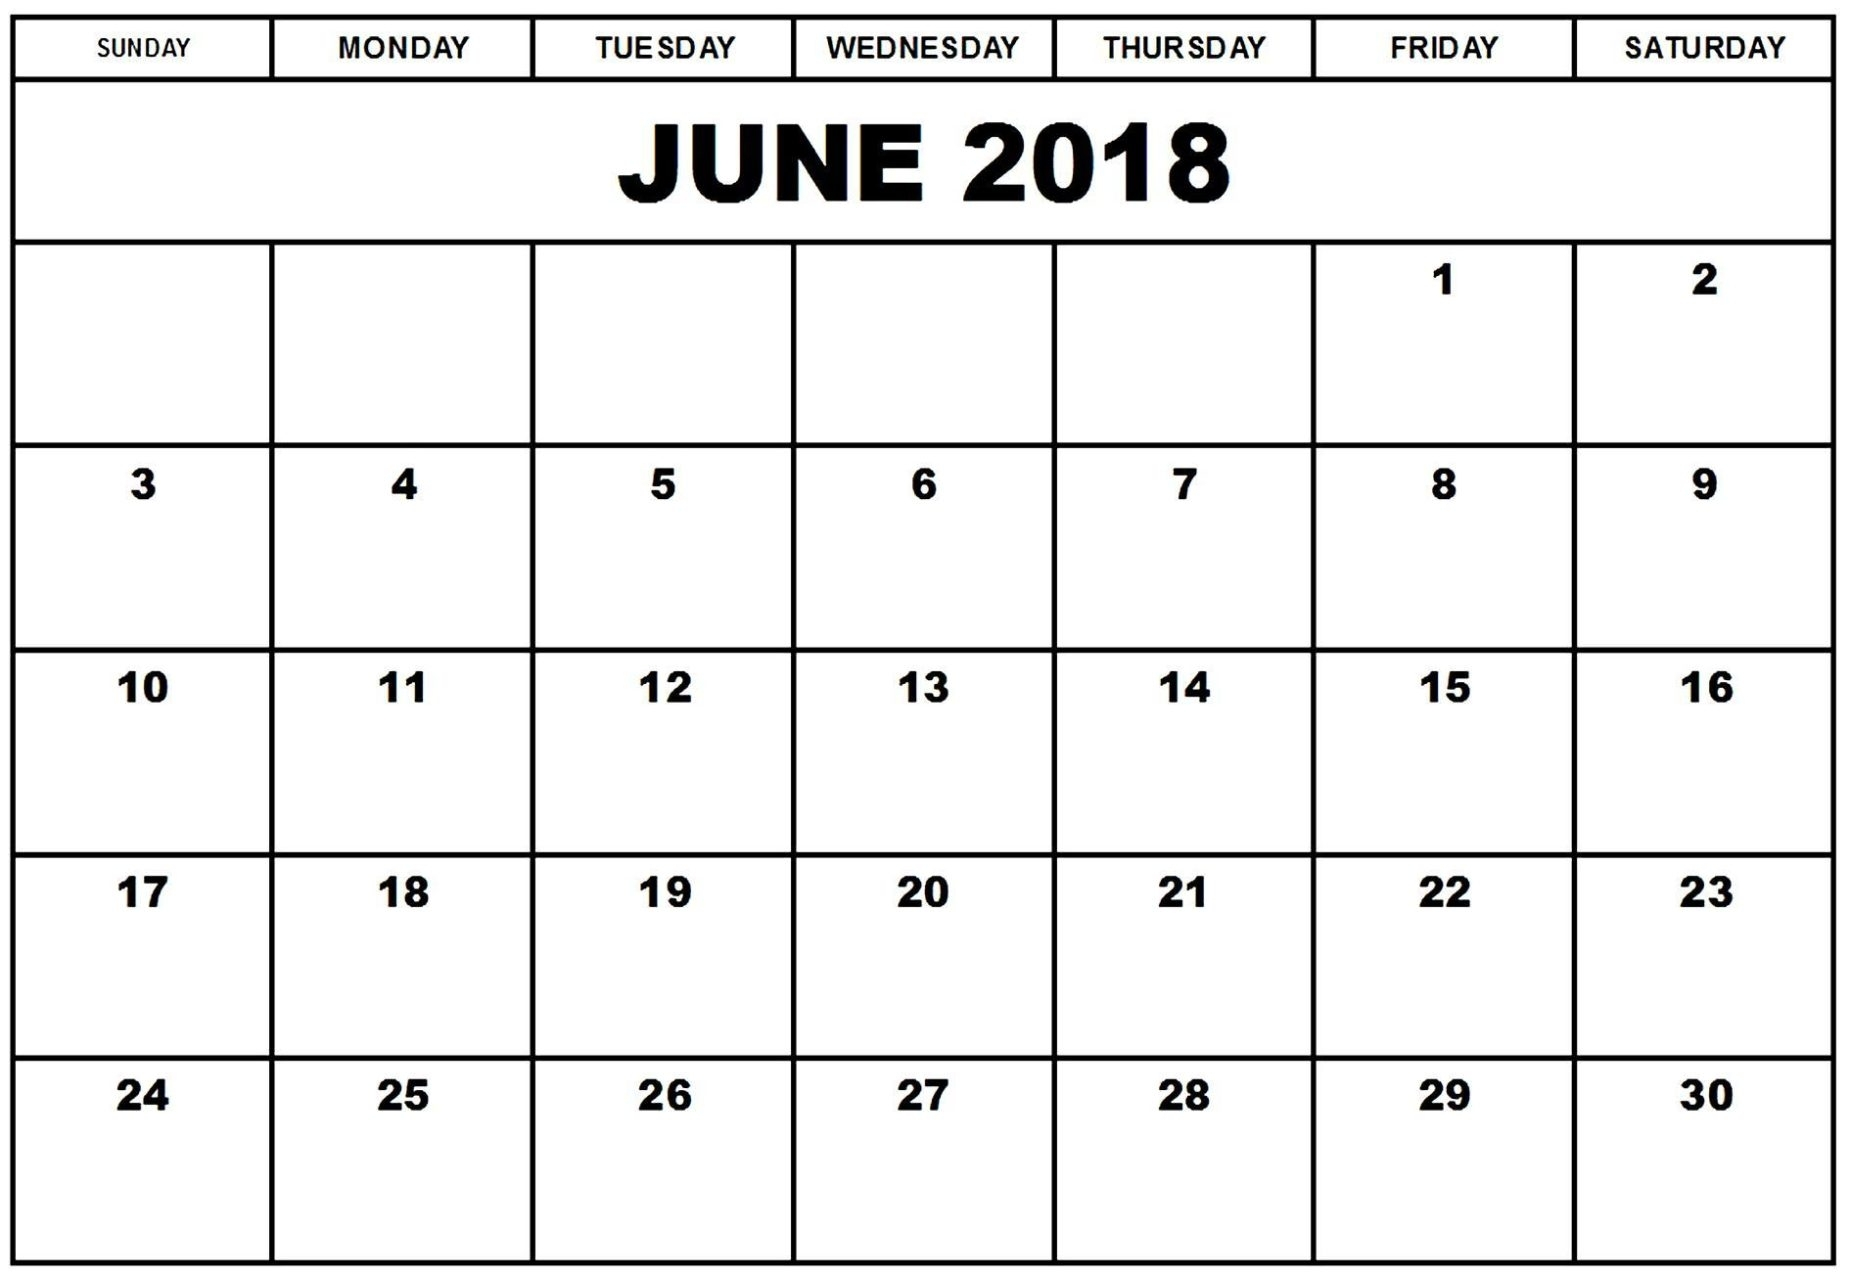 Monthly Calendar June 2018 Template Free Download - July 2019 pertaining to June And July Calendar Printable